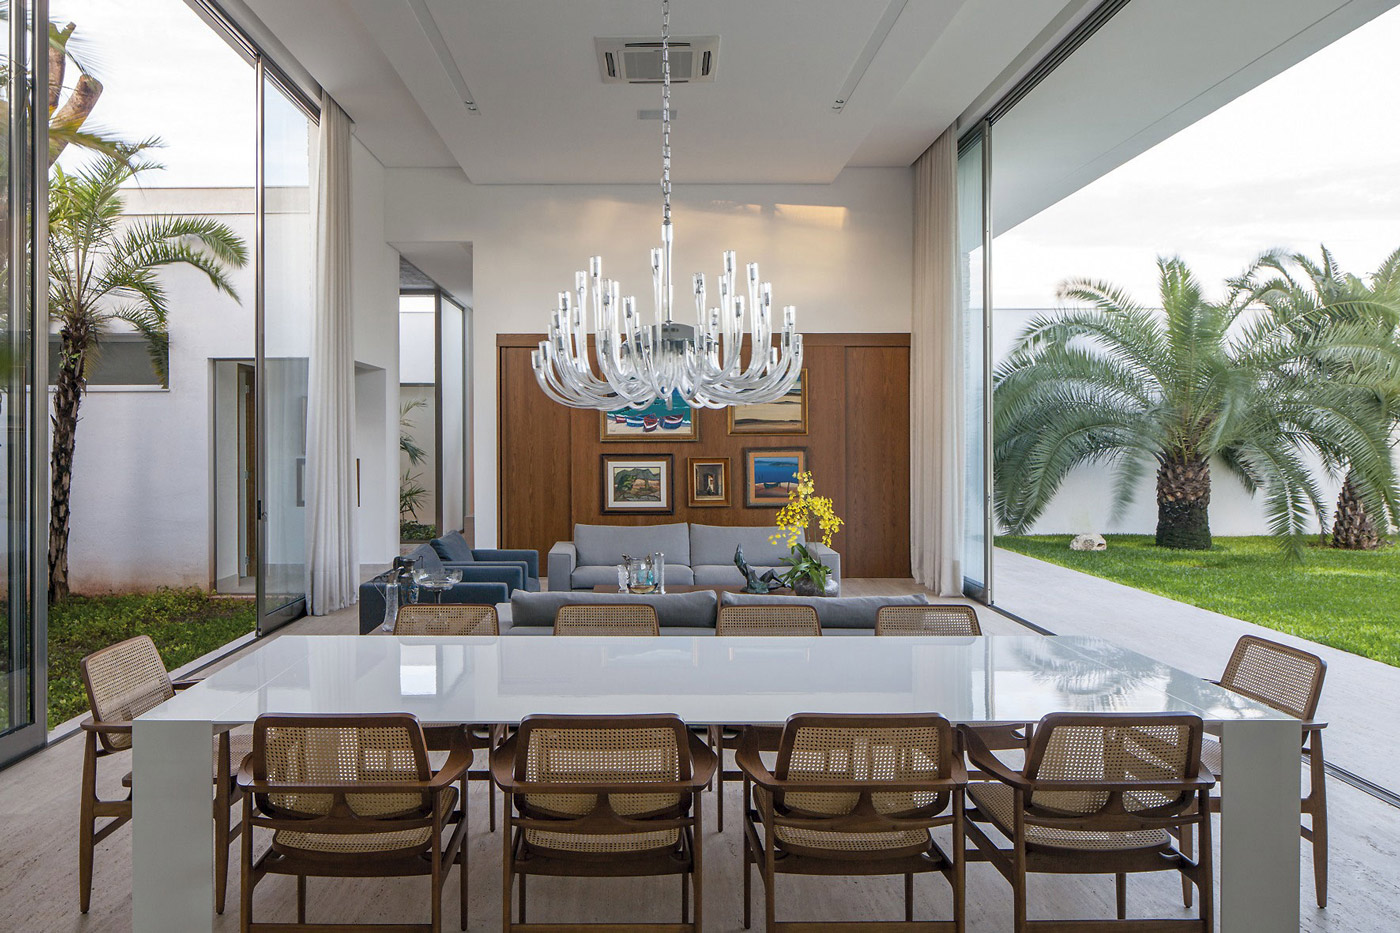 Chandelier, Dining Table, Living Space, Patio Doors, Home in Uberlandia, Brazil